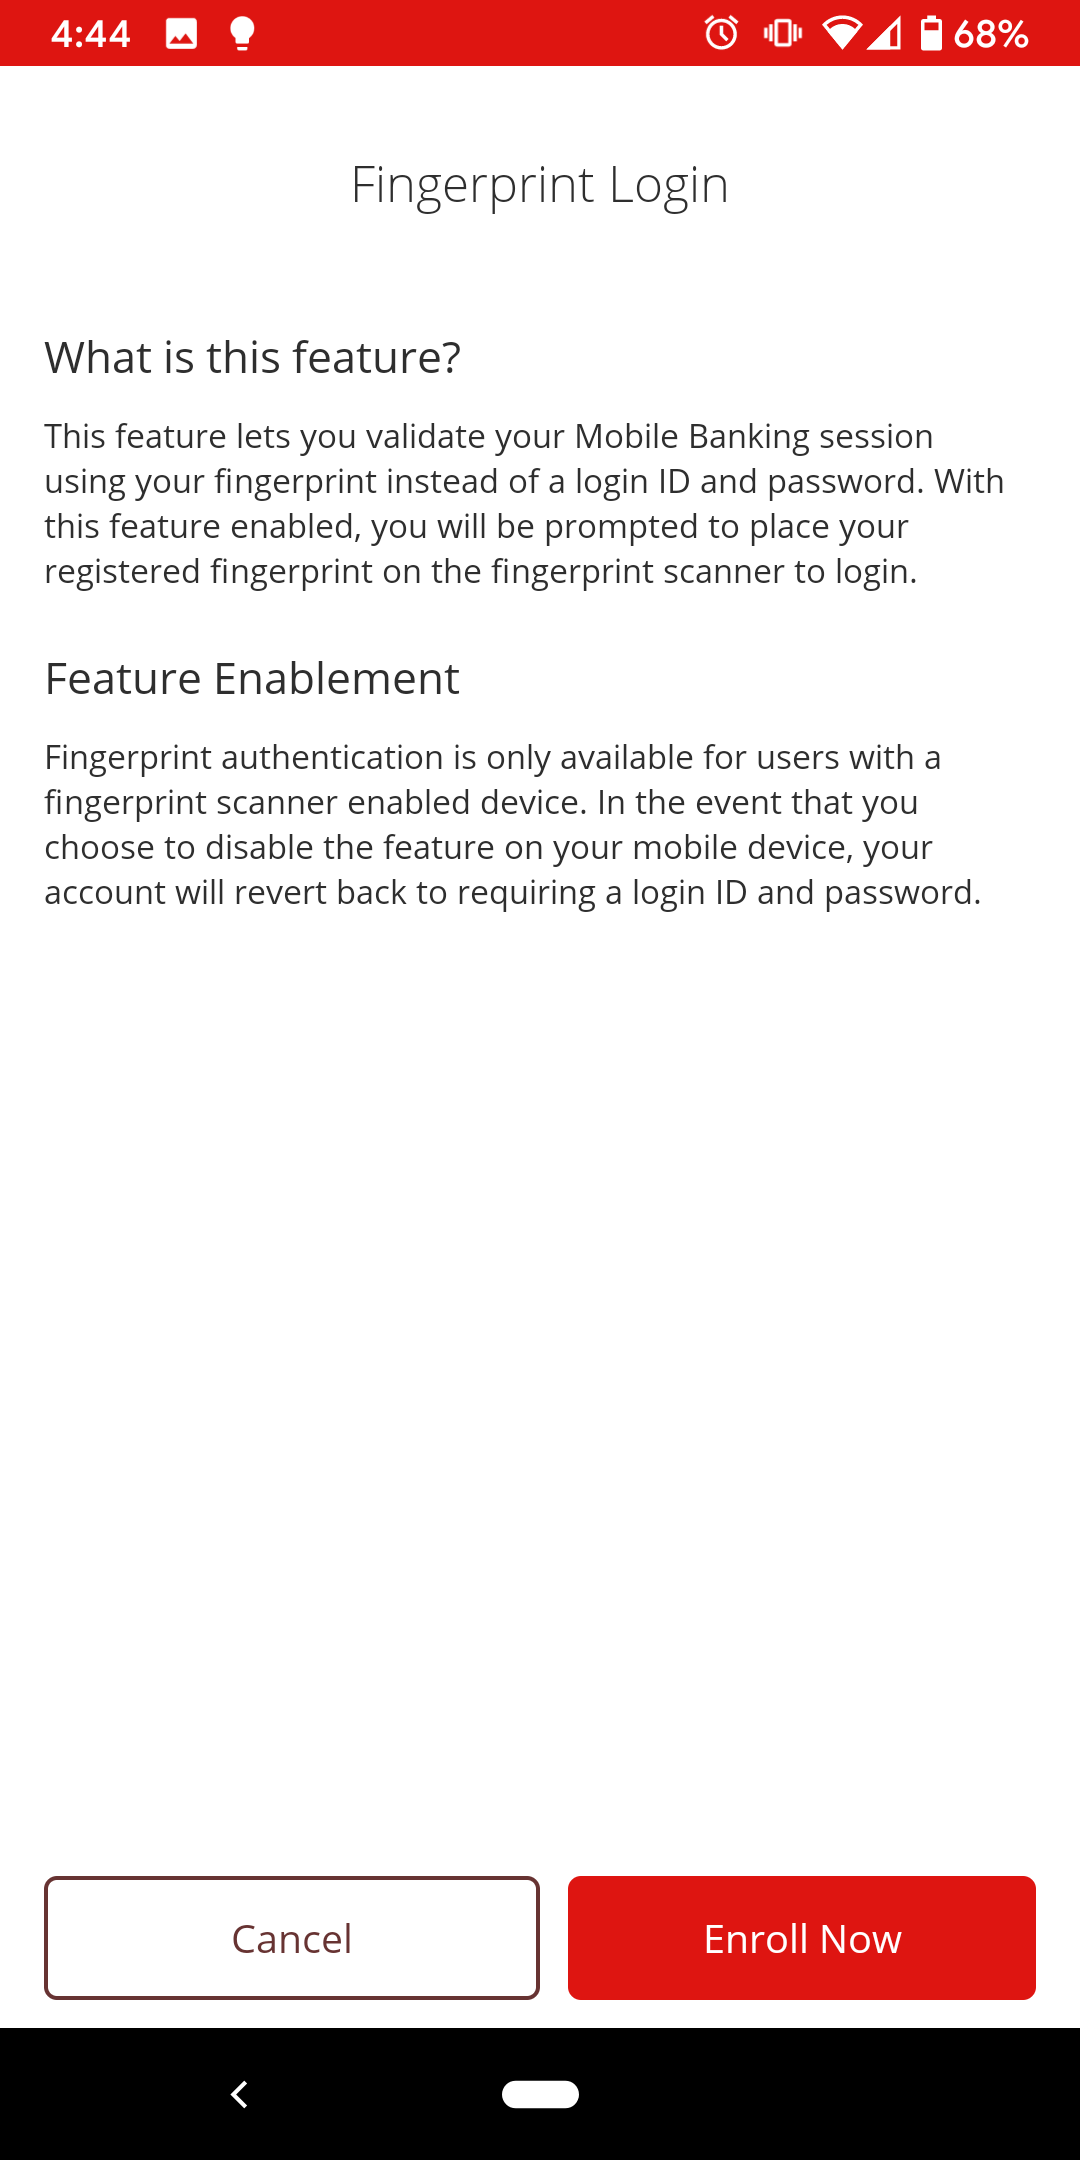 Login - Mobile Login Options Fingerprint Enroll